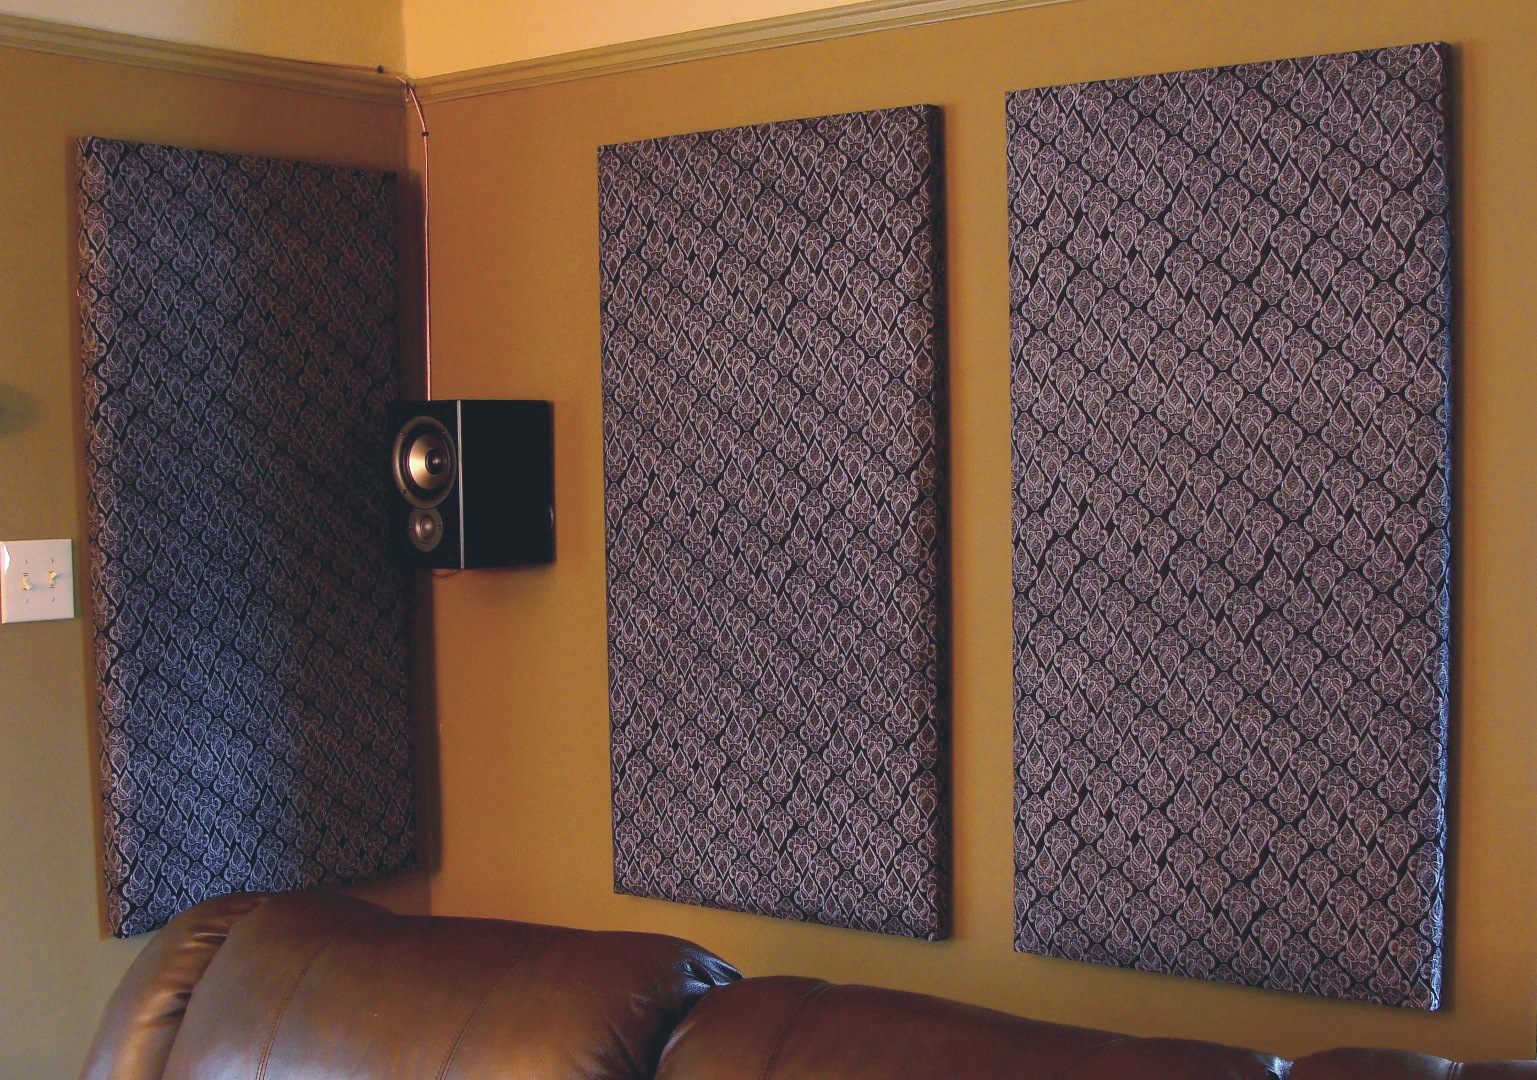 Pleasant How To Build Your Own Acoustic Panels Diy Largest Home Design Picture Inspirations Pitcheantrous